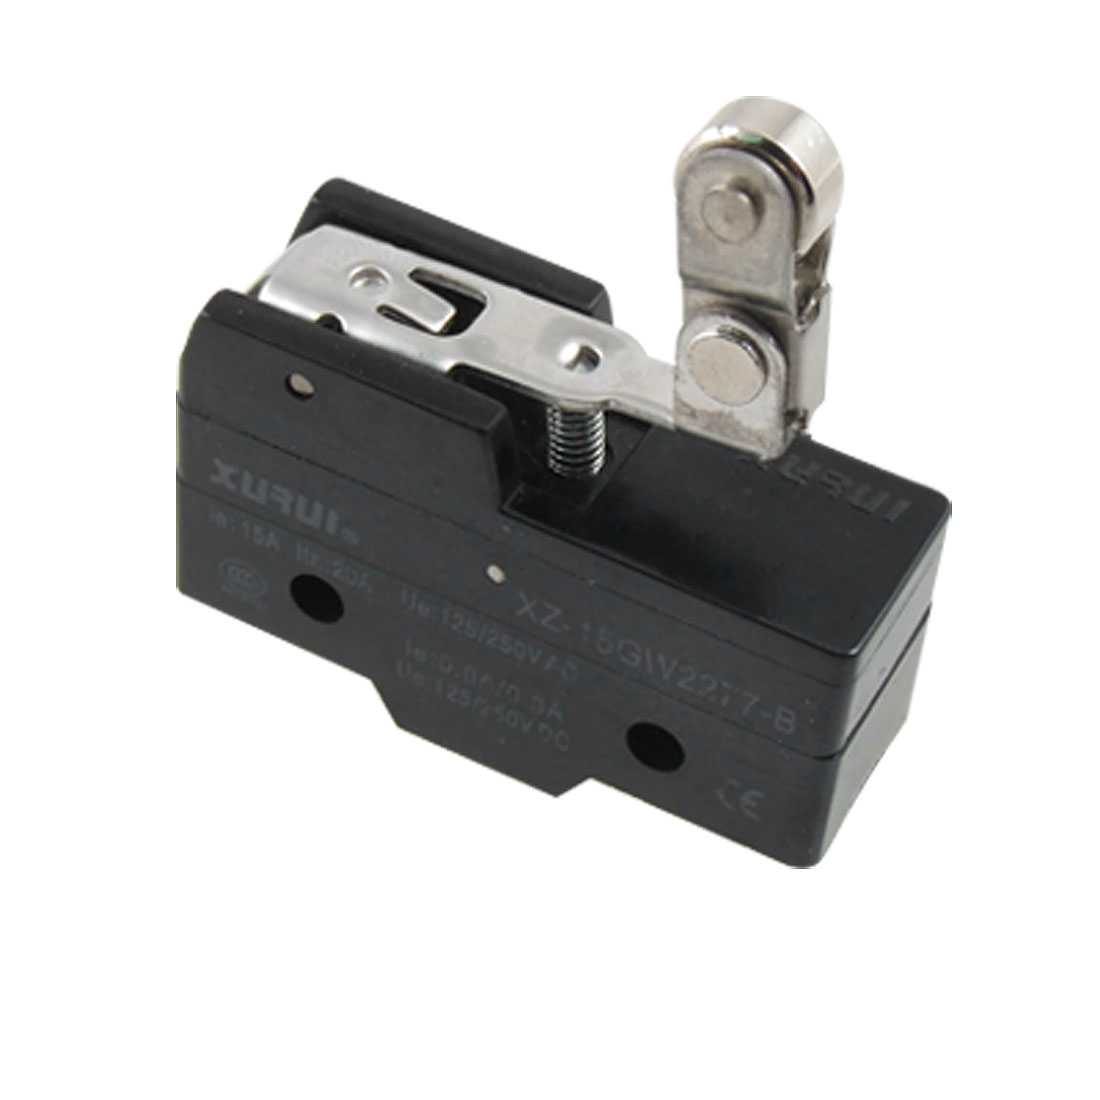 NO NC Microswitch Parallel Roller Lever Basic Limit Switch XZ-15GW2277-B